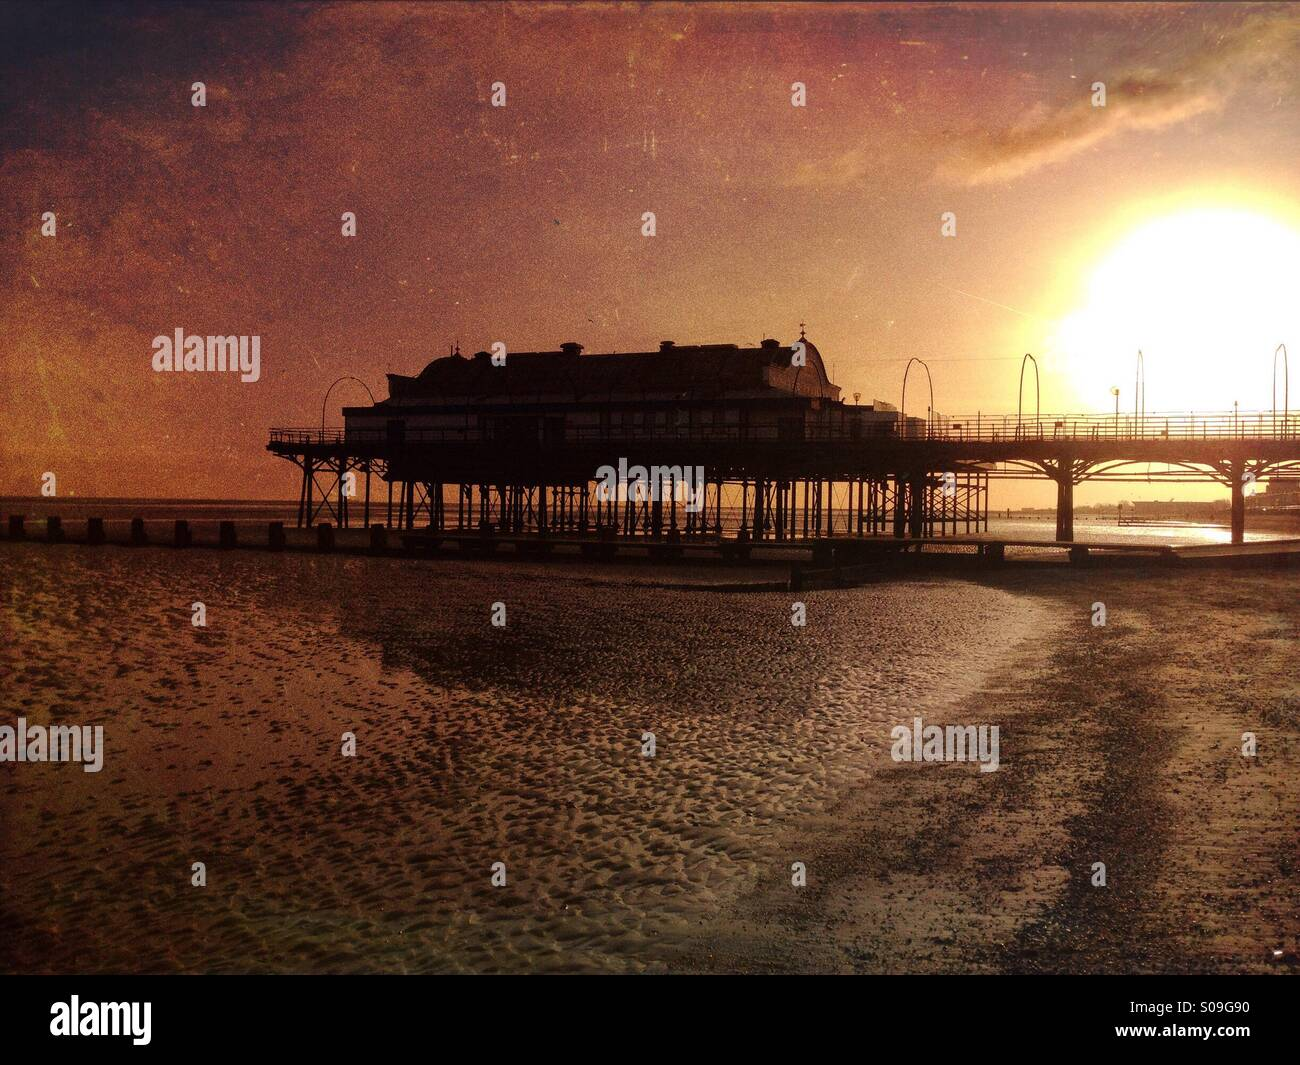 Atmospheric silhouette of Cleethorpes Pier at sunrise, architectural minimalism set against the rising sun, seen Stock Photo